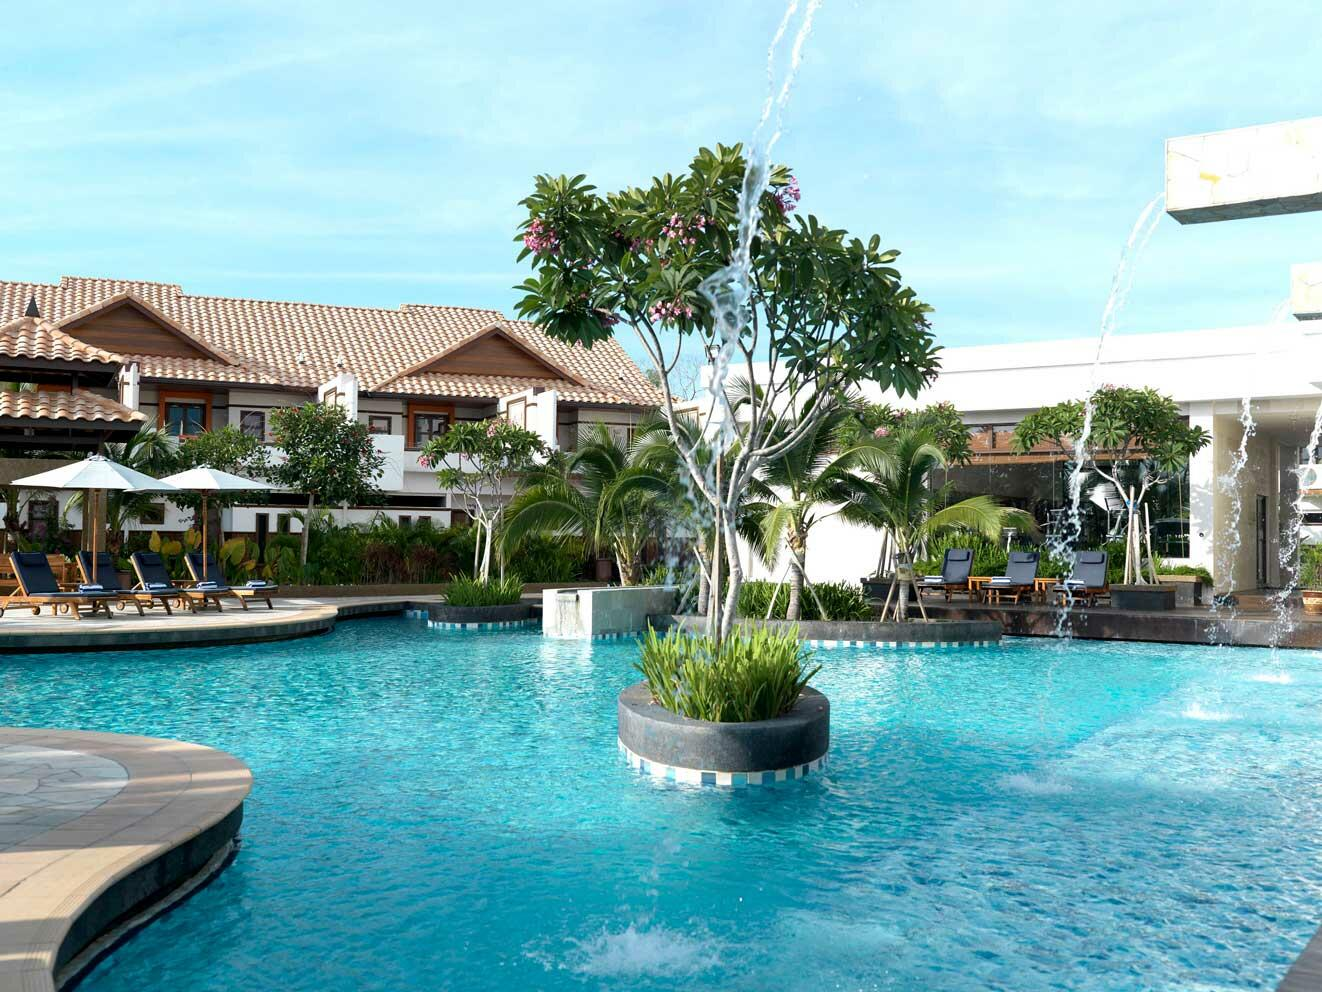 Facilities | Port Dickson Activities | What To Do in Port Dickso